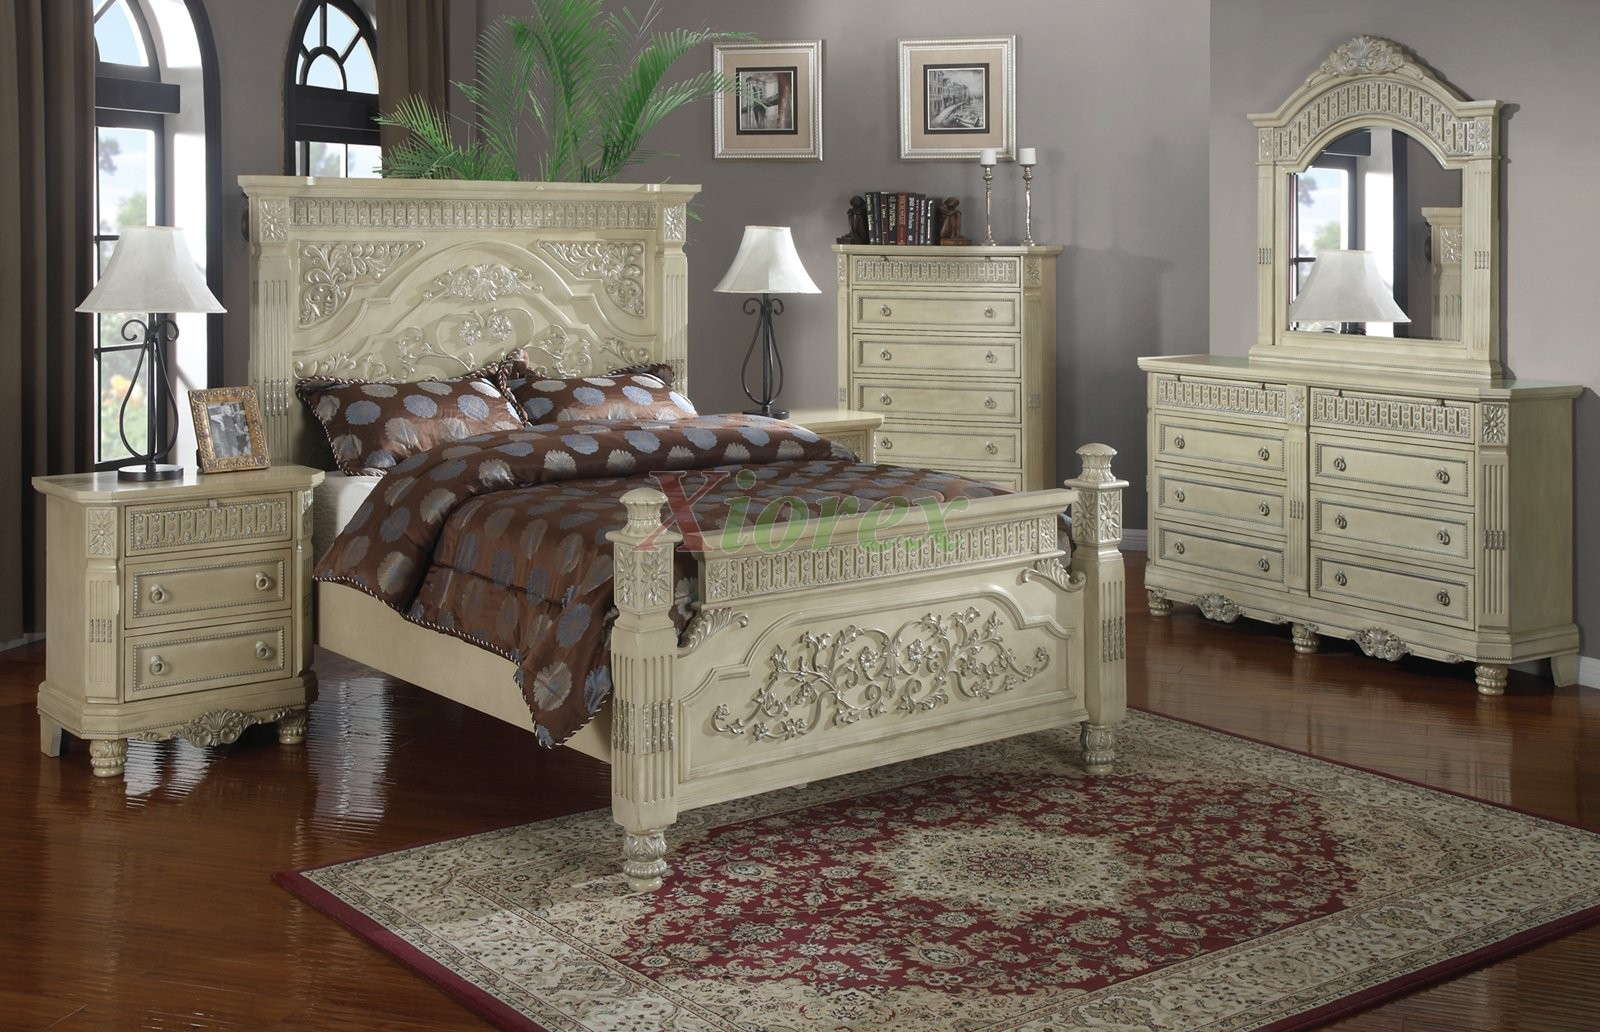 White Luxury Bedroom Furniture Sets With Tall Headboard Beds ...